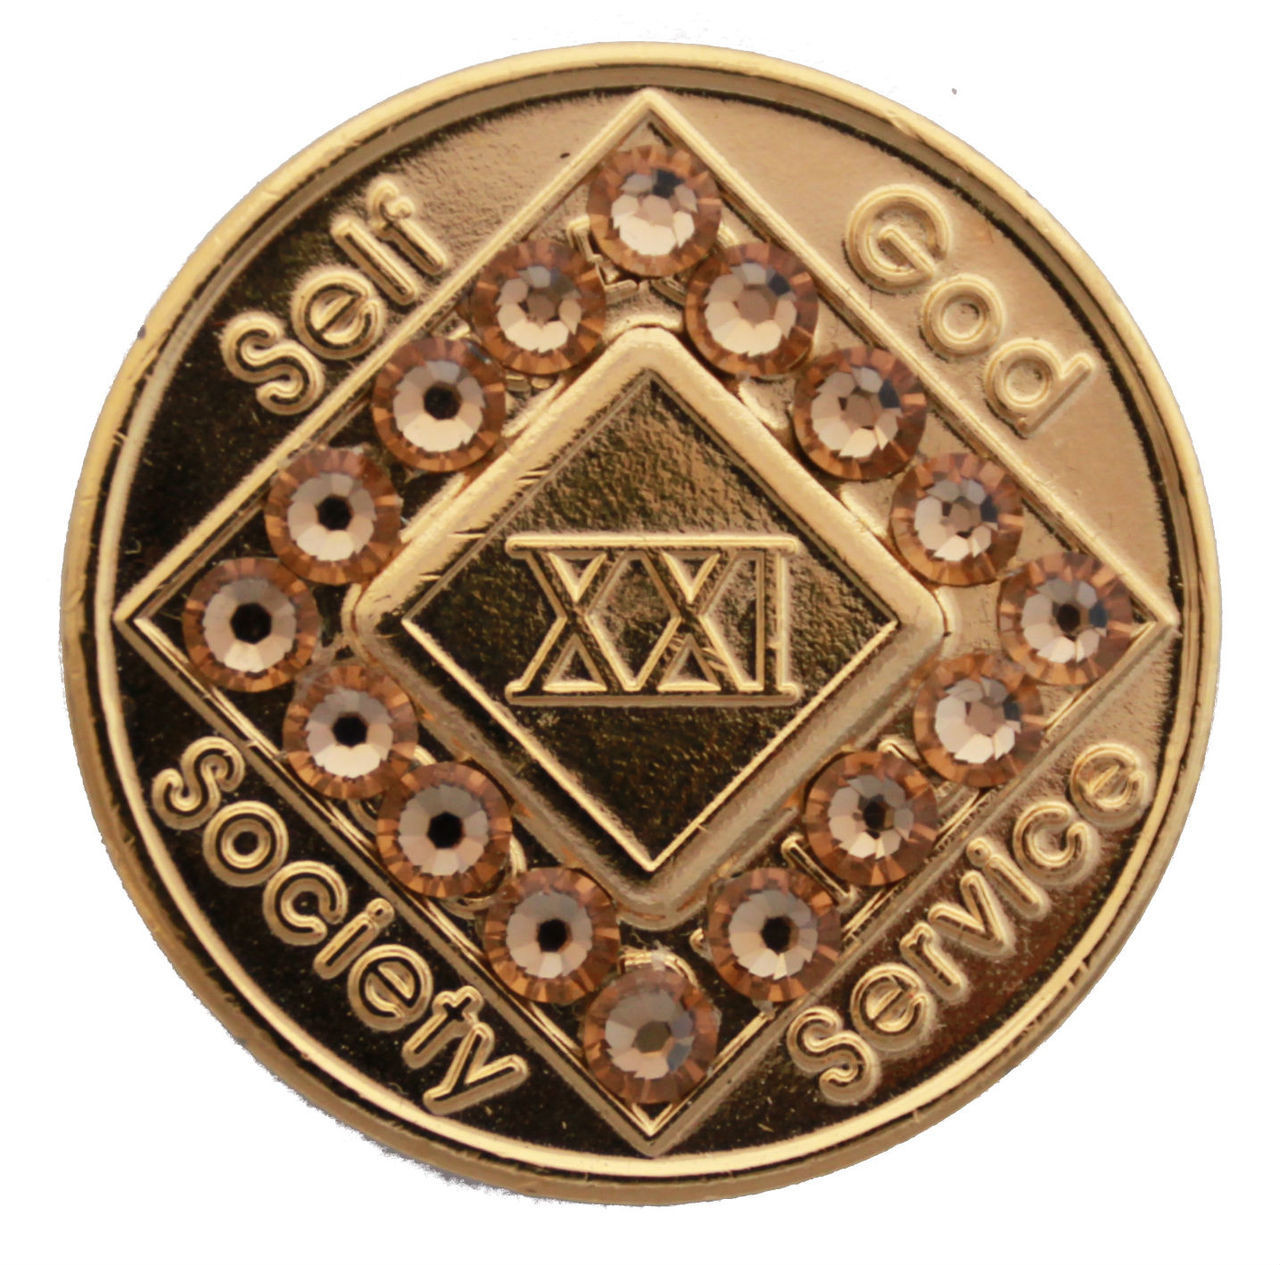 Na Gold Bling Recovery Medallion Narcotics Anonymous